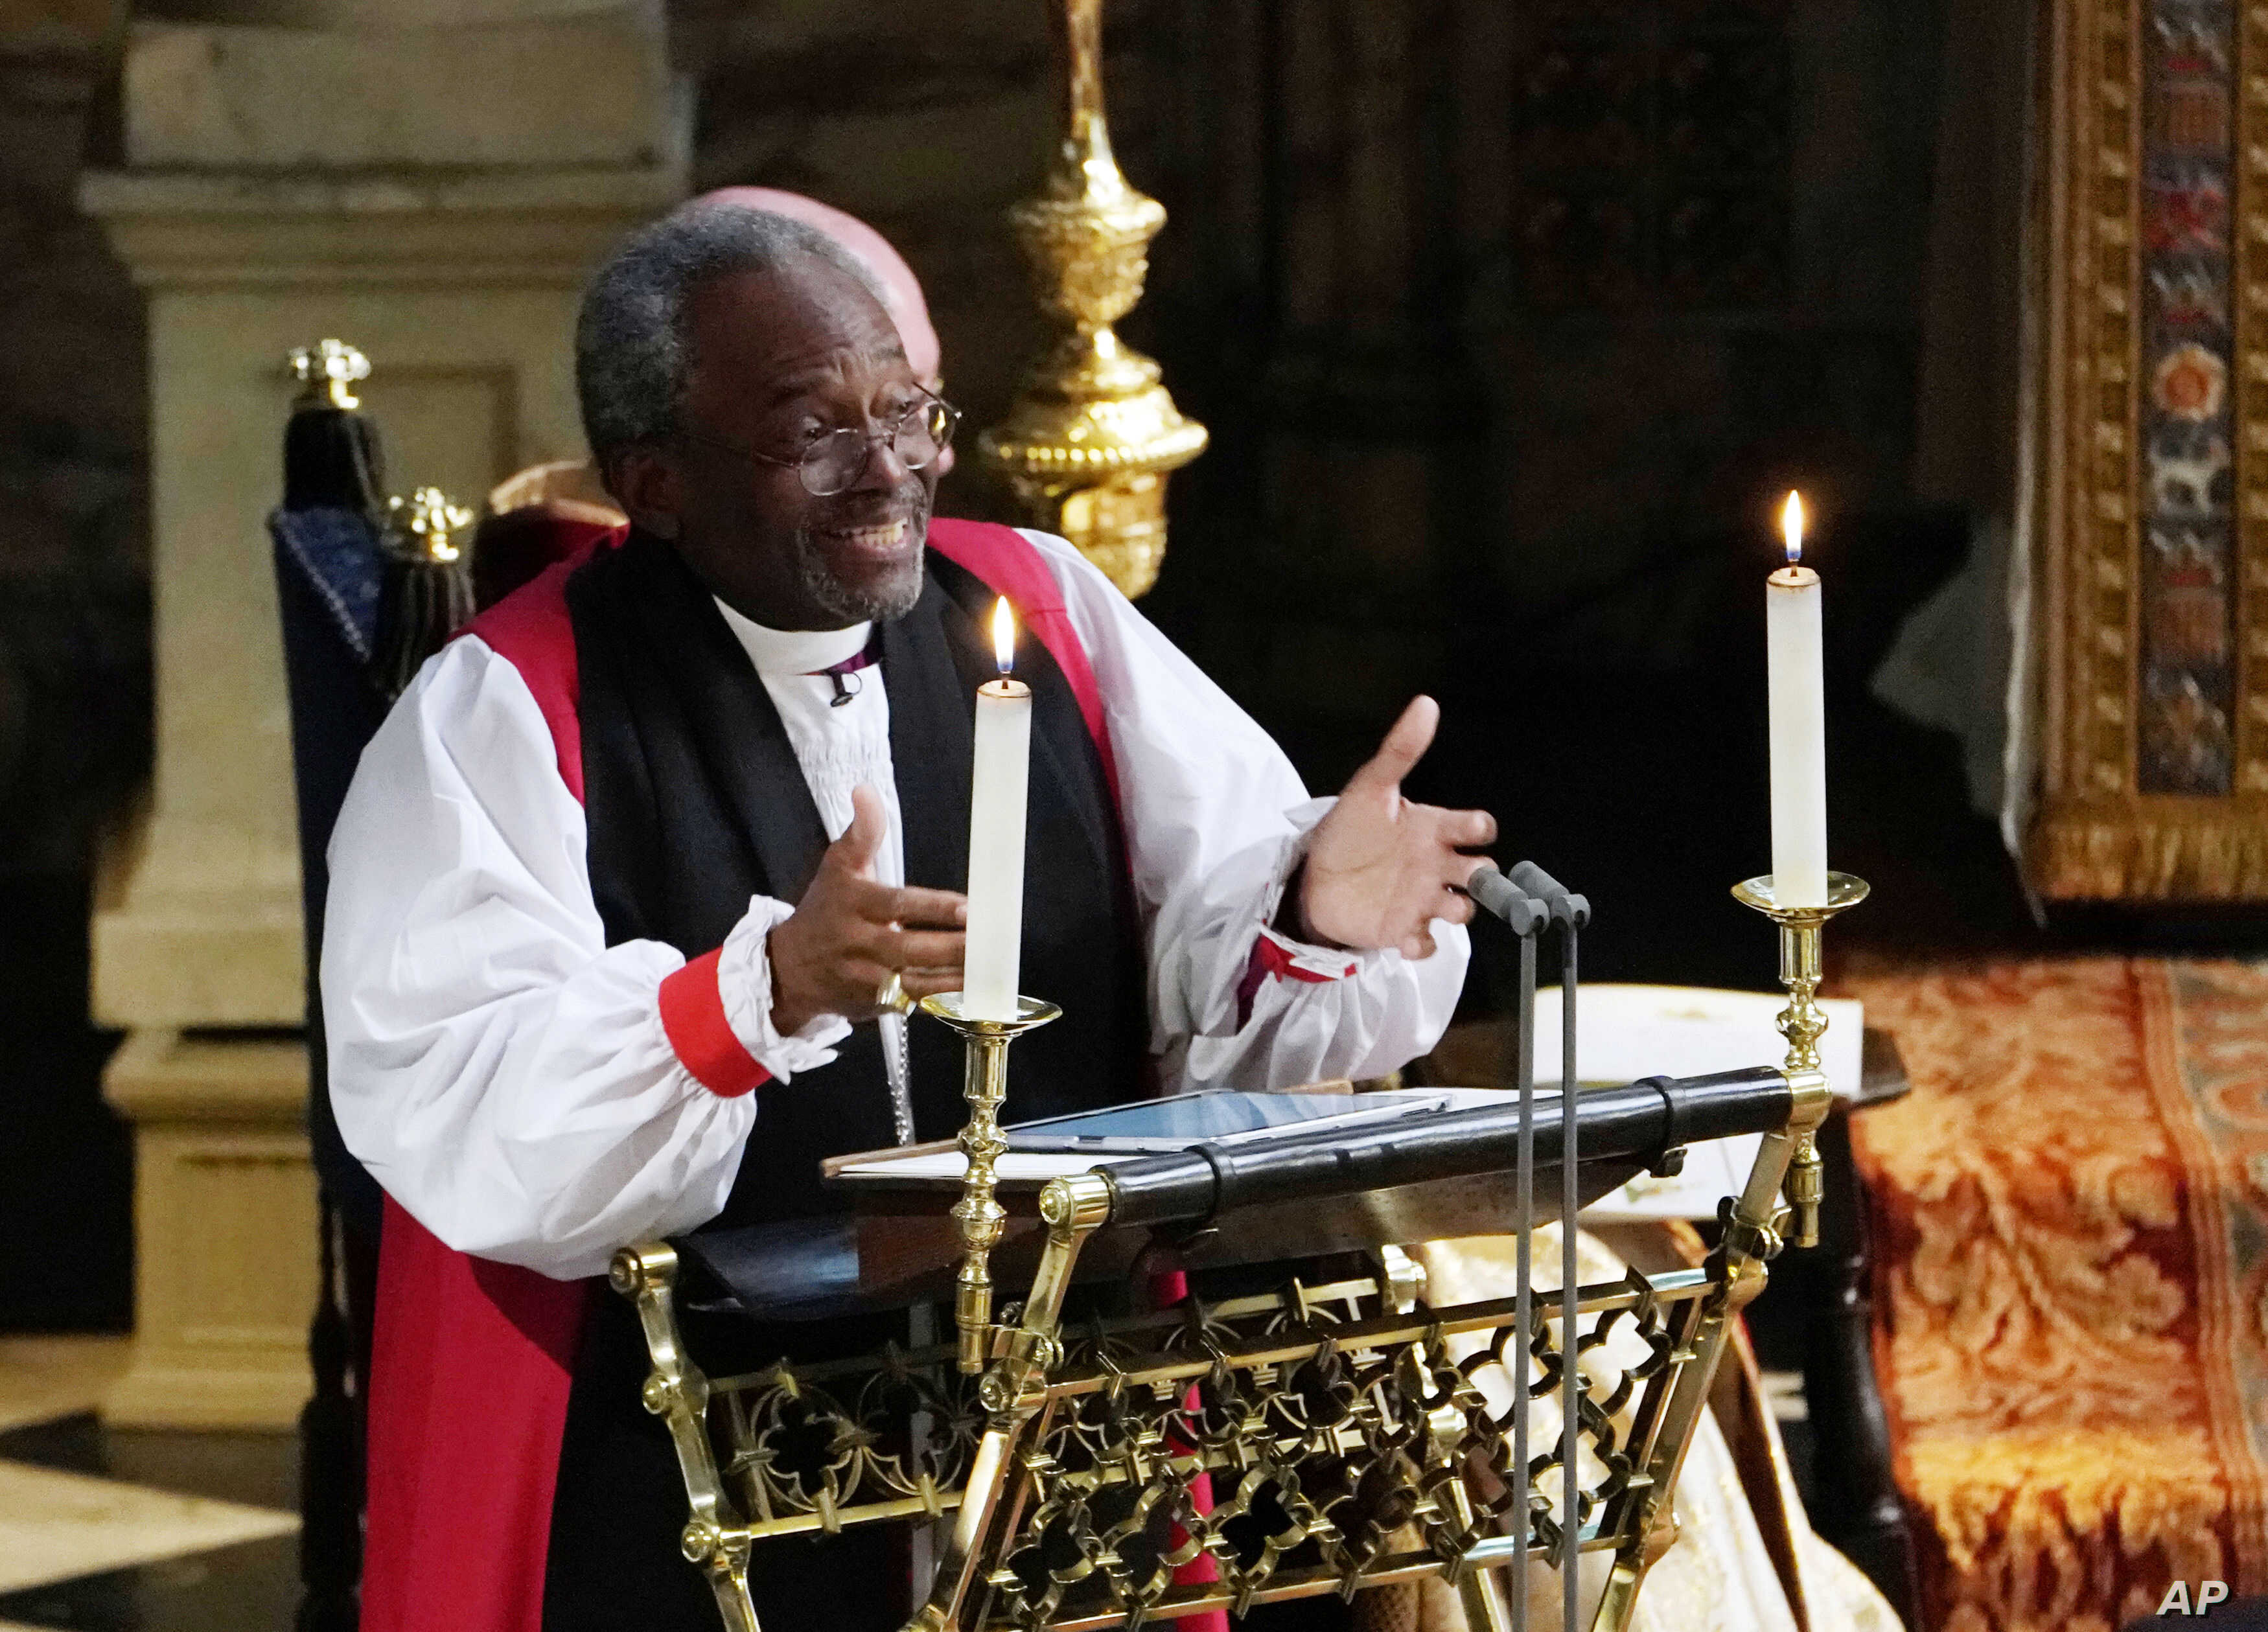 The Most Rev Bishop Michael Curry, primate of the Episcopal Church, speaks during the wedding ceremony of Prince Harry and Meghan Markle, May 19, 2018.